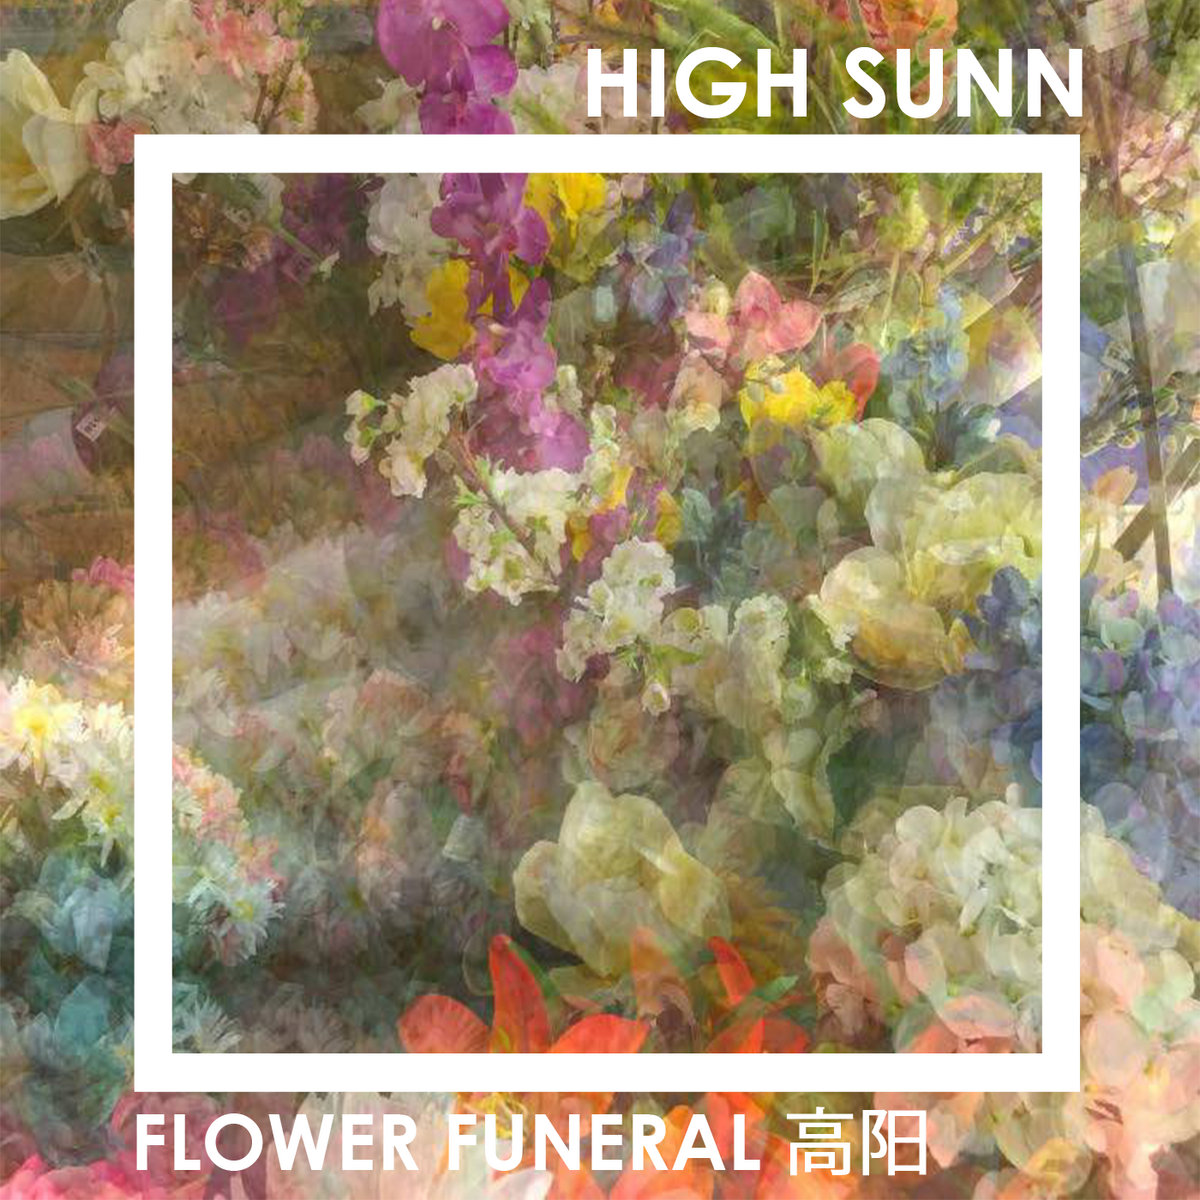 Flower Funeral Crafted Sounds